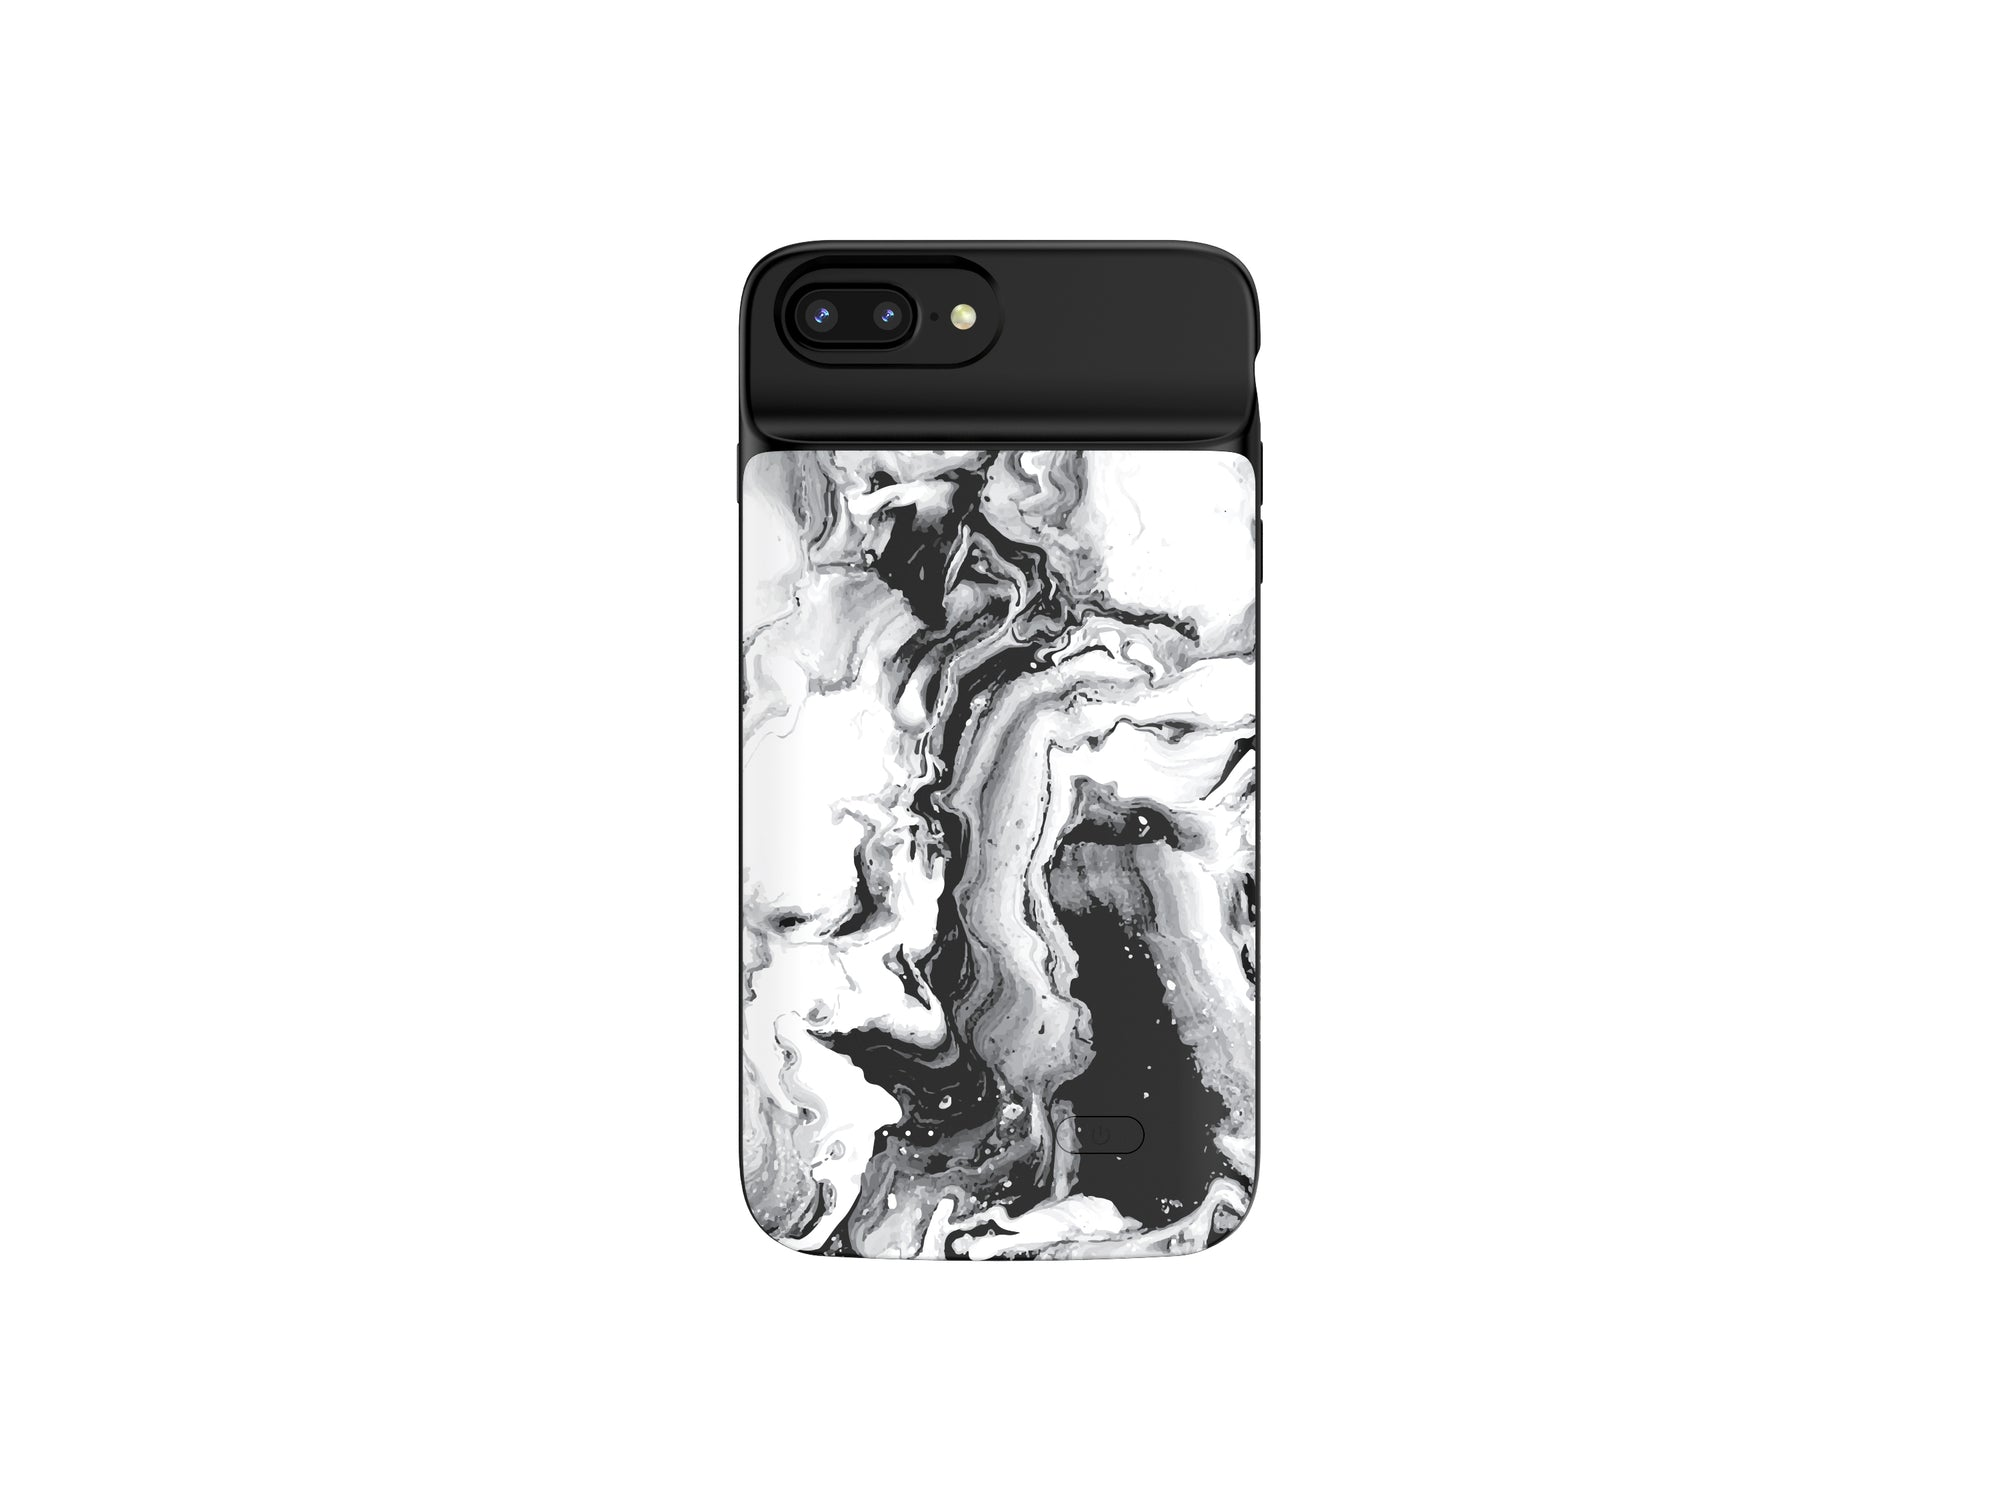 iPhone 6/6s/7/8 (PLUS) B&W Marble